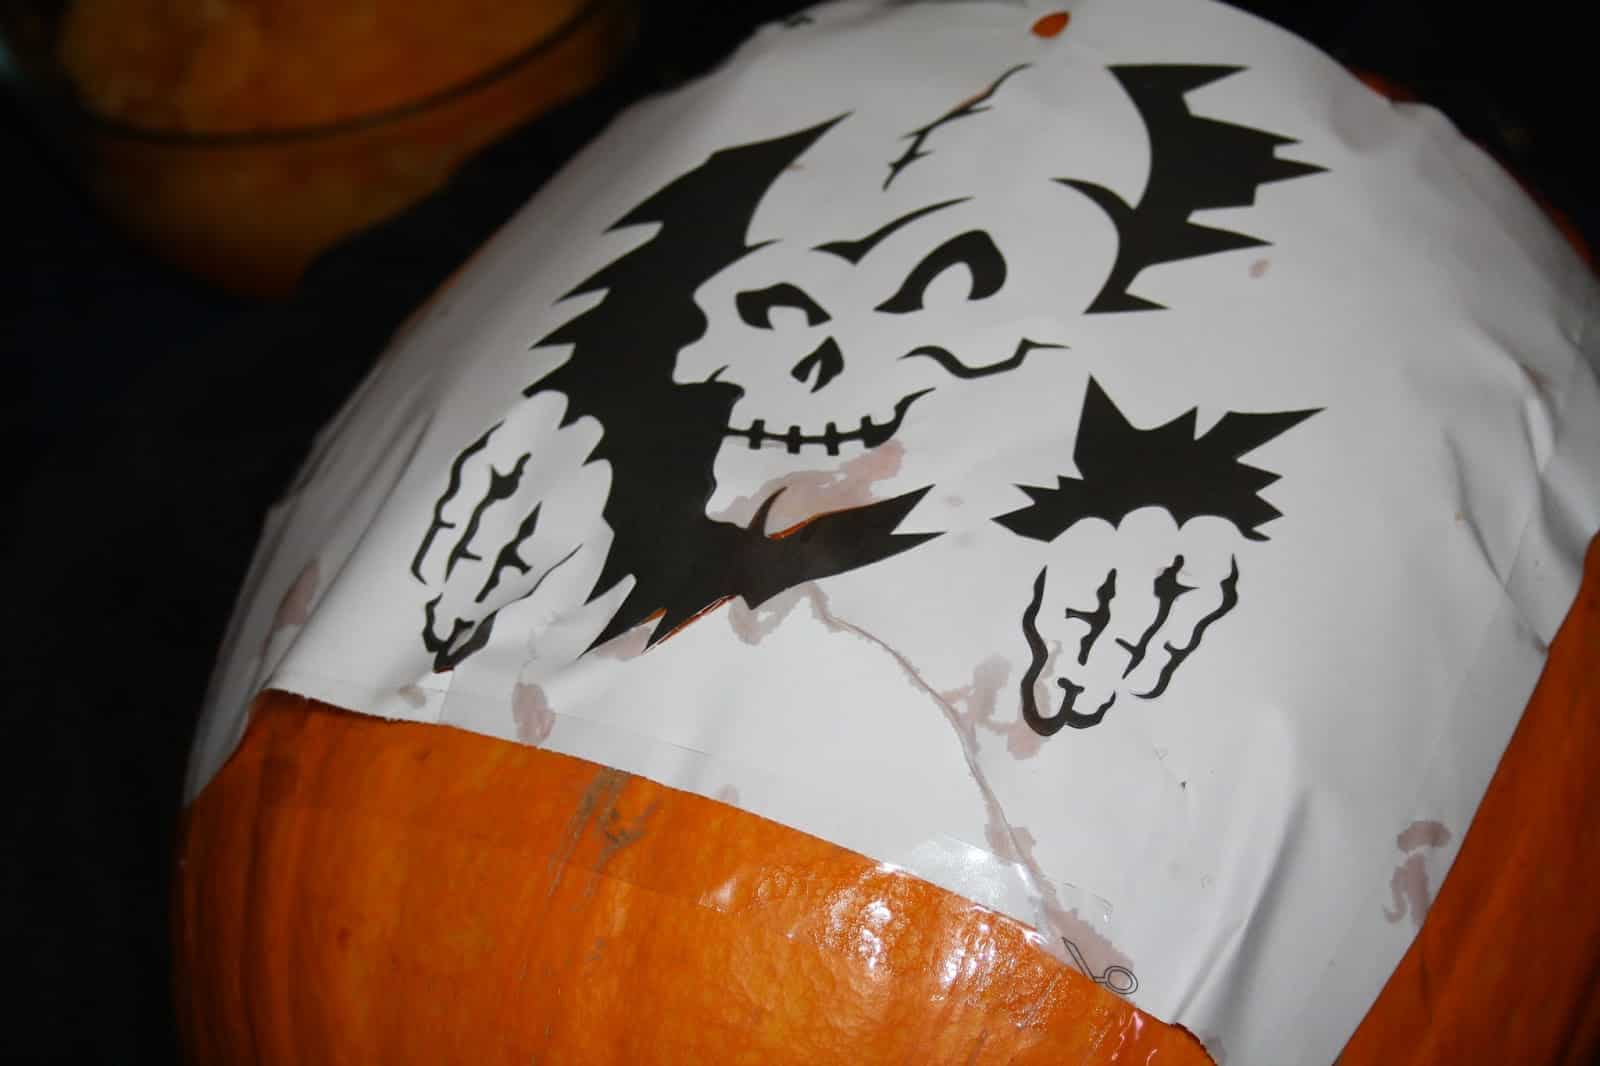 Tips for carving pumpkins using stencils